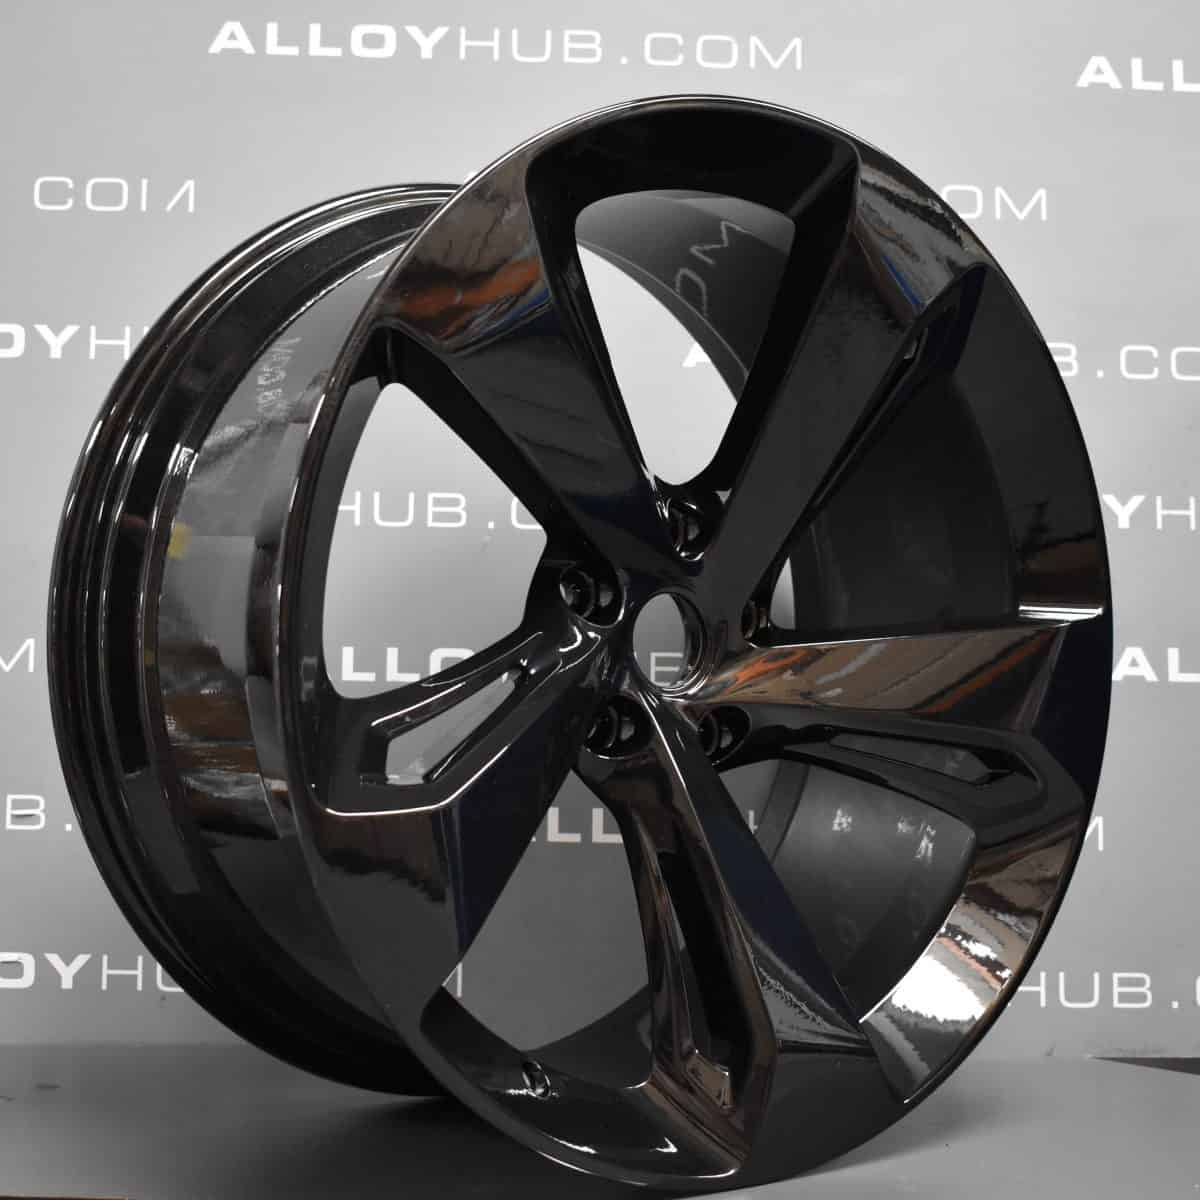 """Genuine Bentley Bentayga 5 Spoke 22"""" Inch Alloy Wheels with Gloss Black Finish 3A601025D, 36A601025G"""